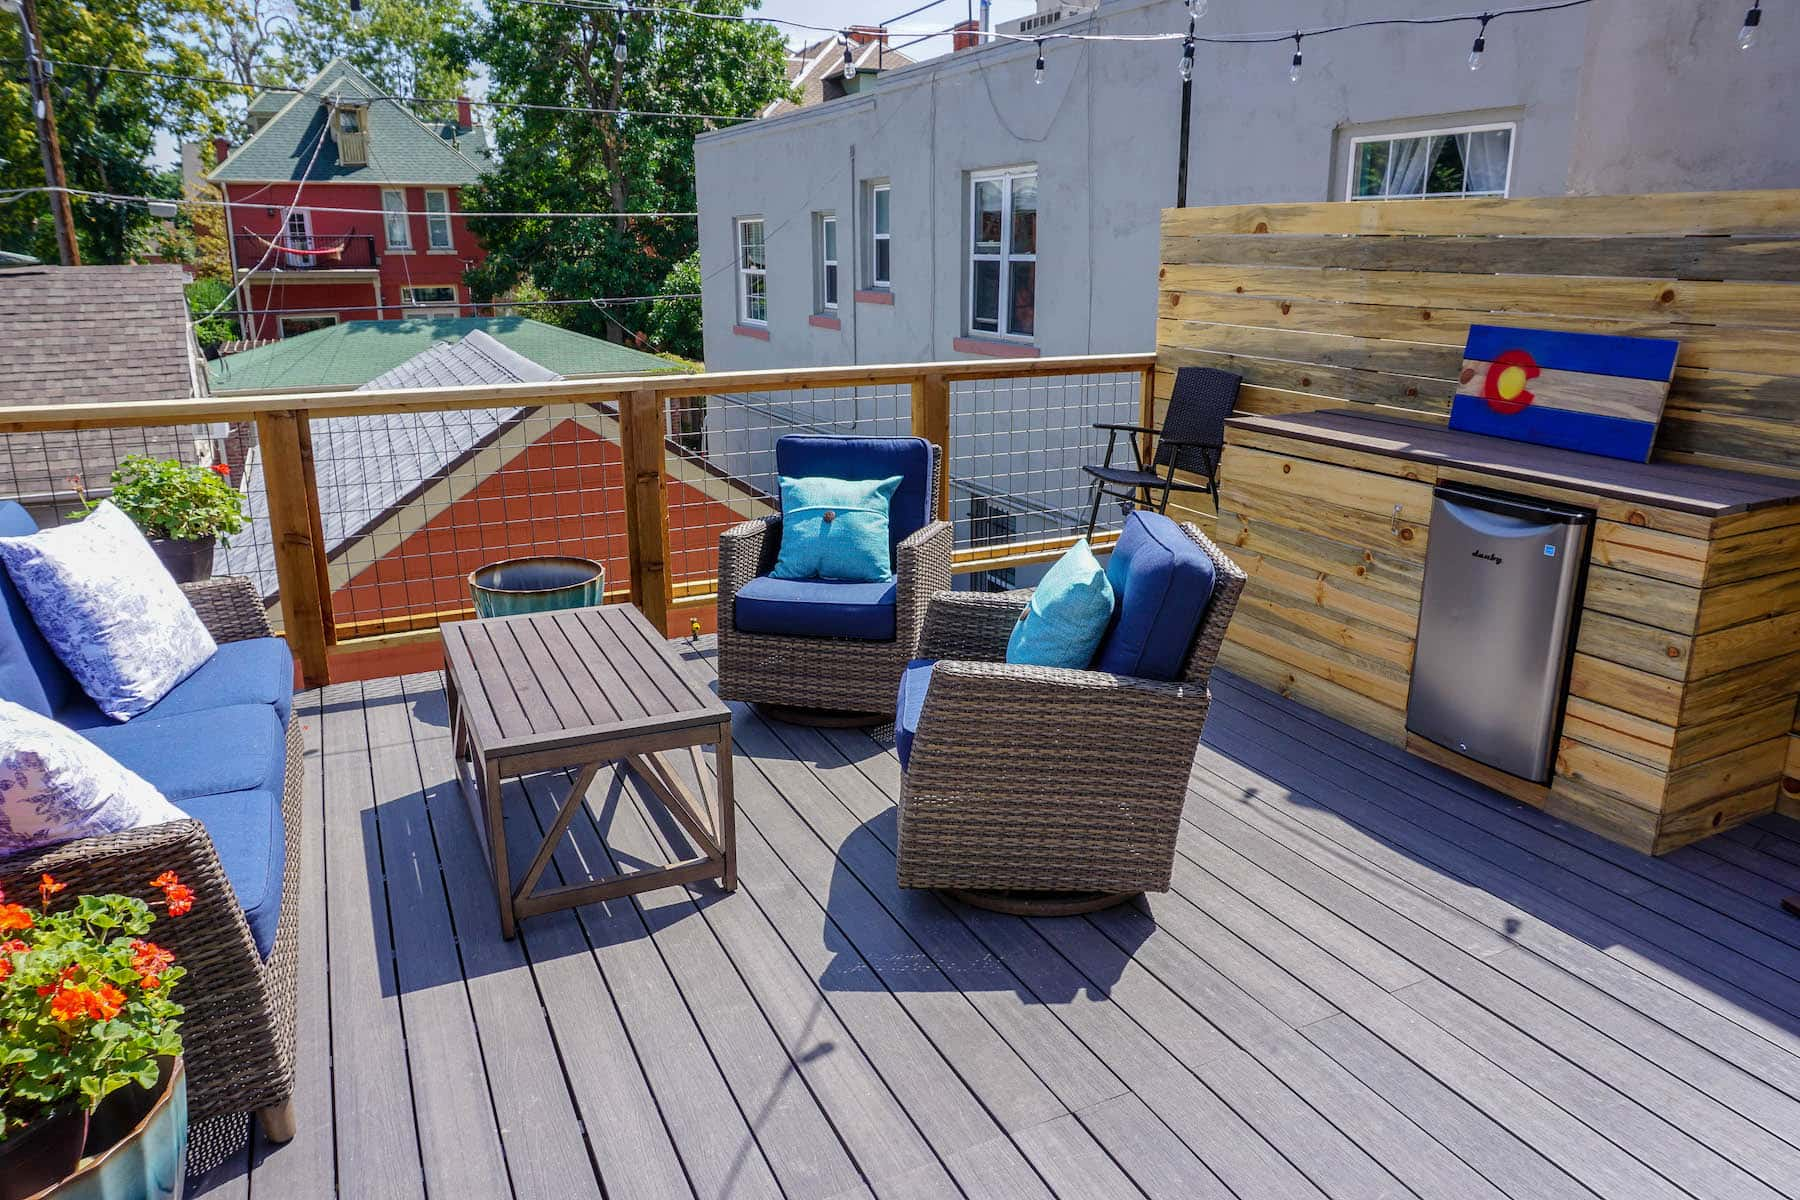 Elevated Deck With Seating and Outdoor Fridge